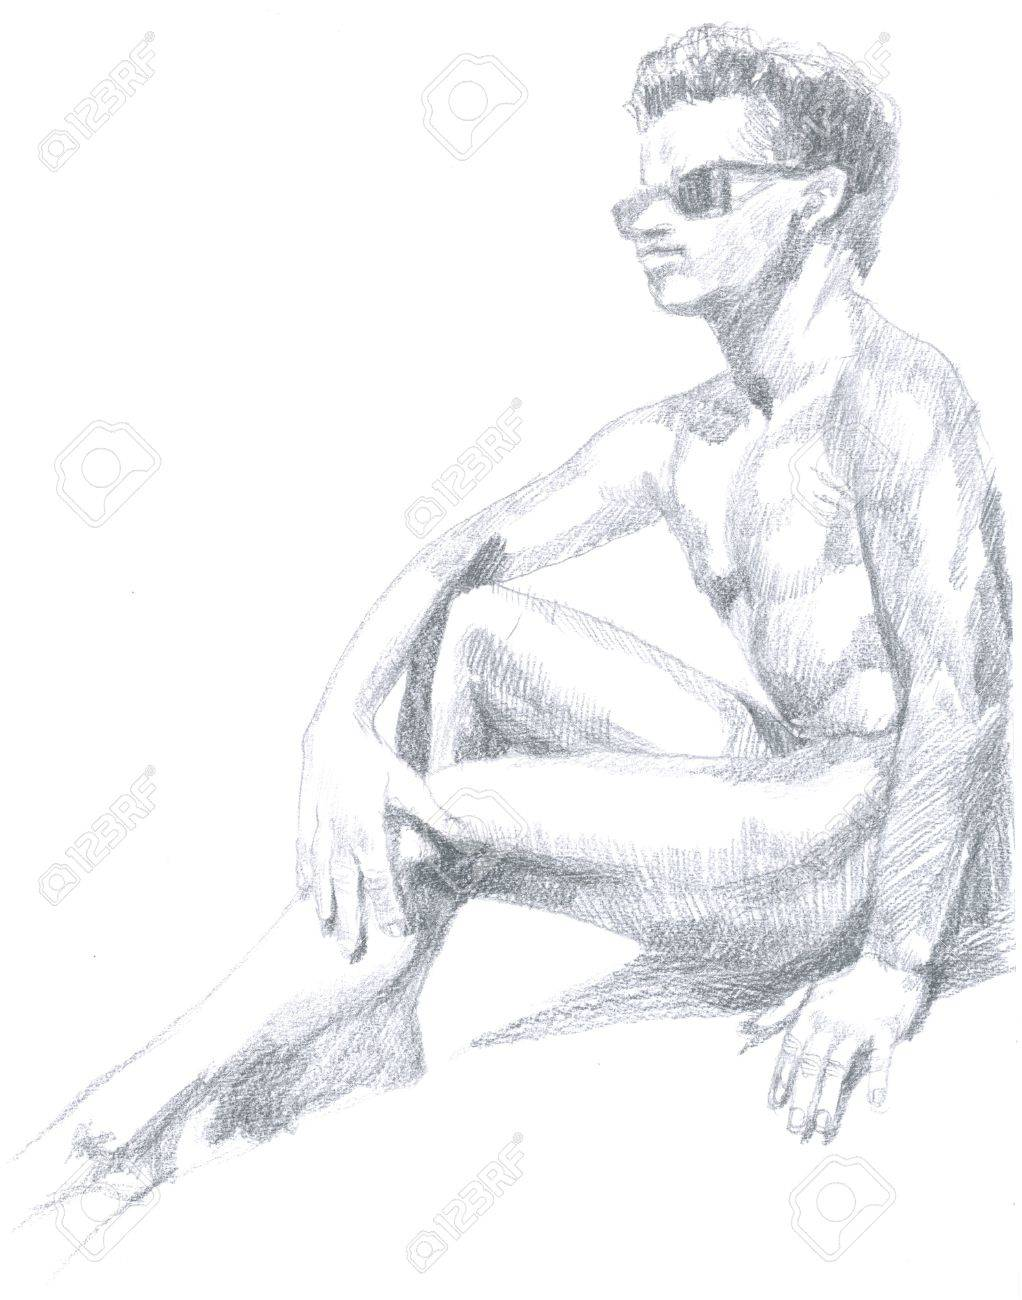 homemade-naked-guy-pencil-drawing-sex-girl